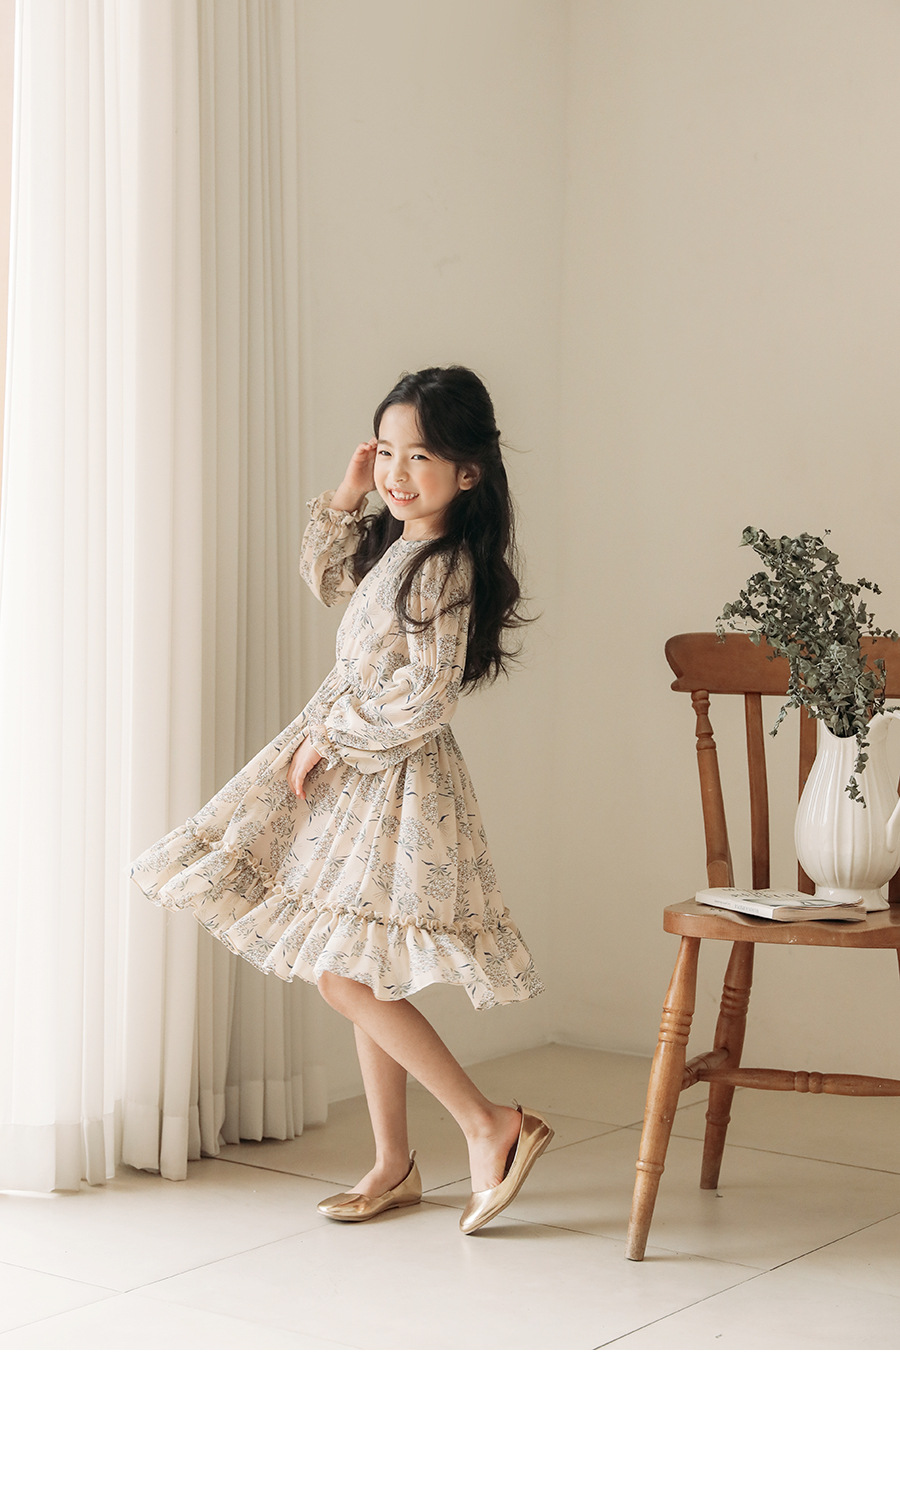 chiffon floral pattern dresses for girls of 12 10 11 14 2 4 6 years old High Quality children dresses 8 year long sleeve clothes 5 7 9 13 15 16 Years little teenage girls spring dresses for girls children girl spring dress (13)